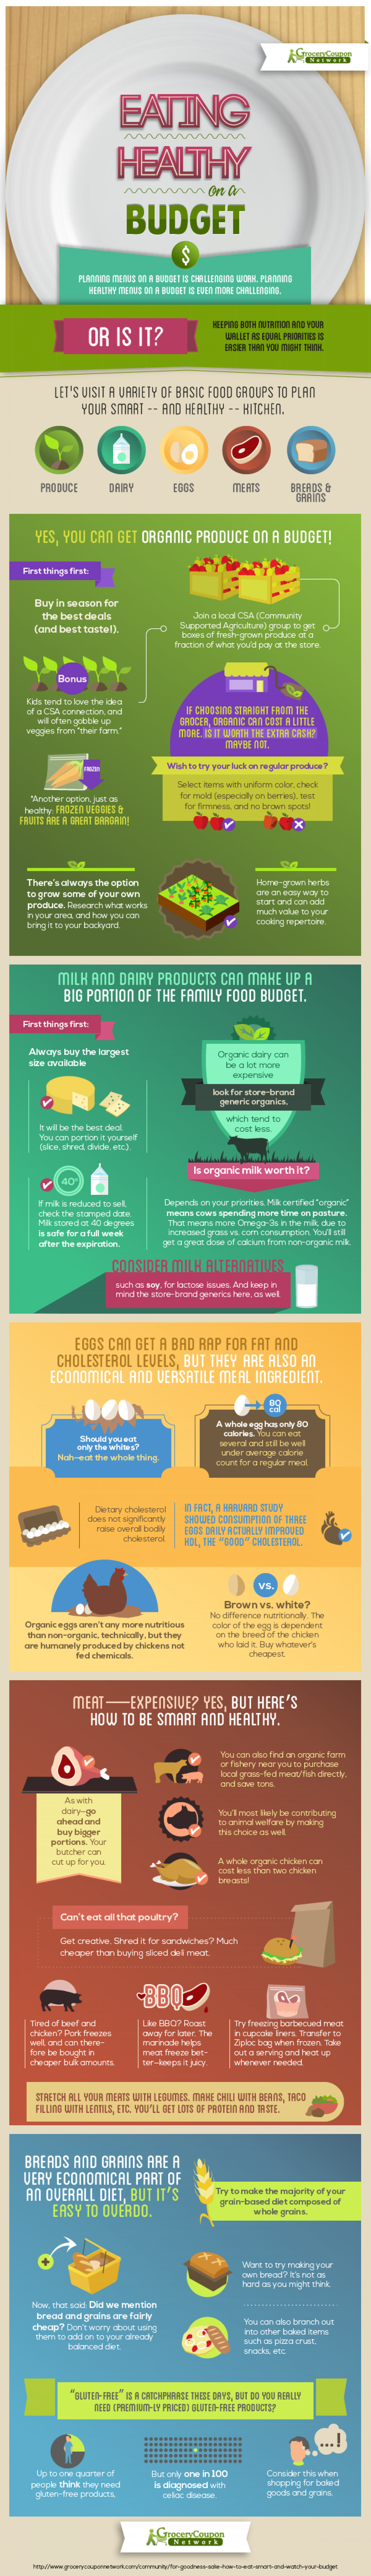 Eating Healthy on a Budget Infographic